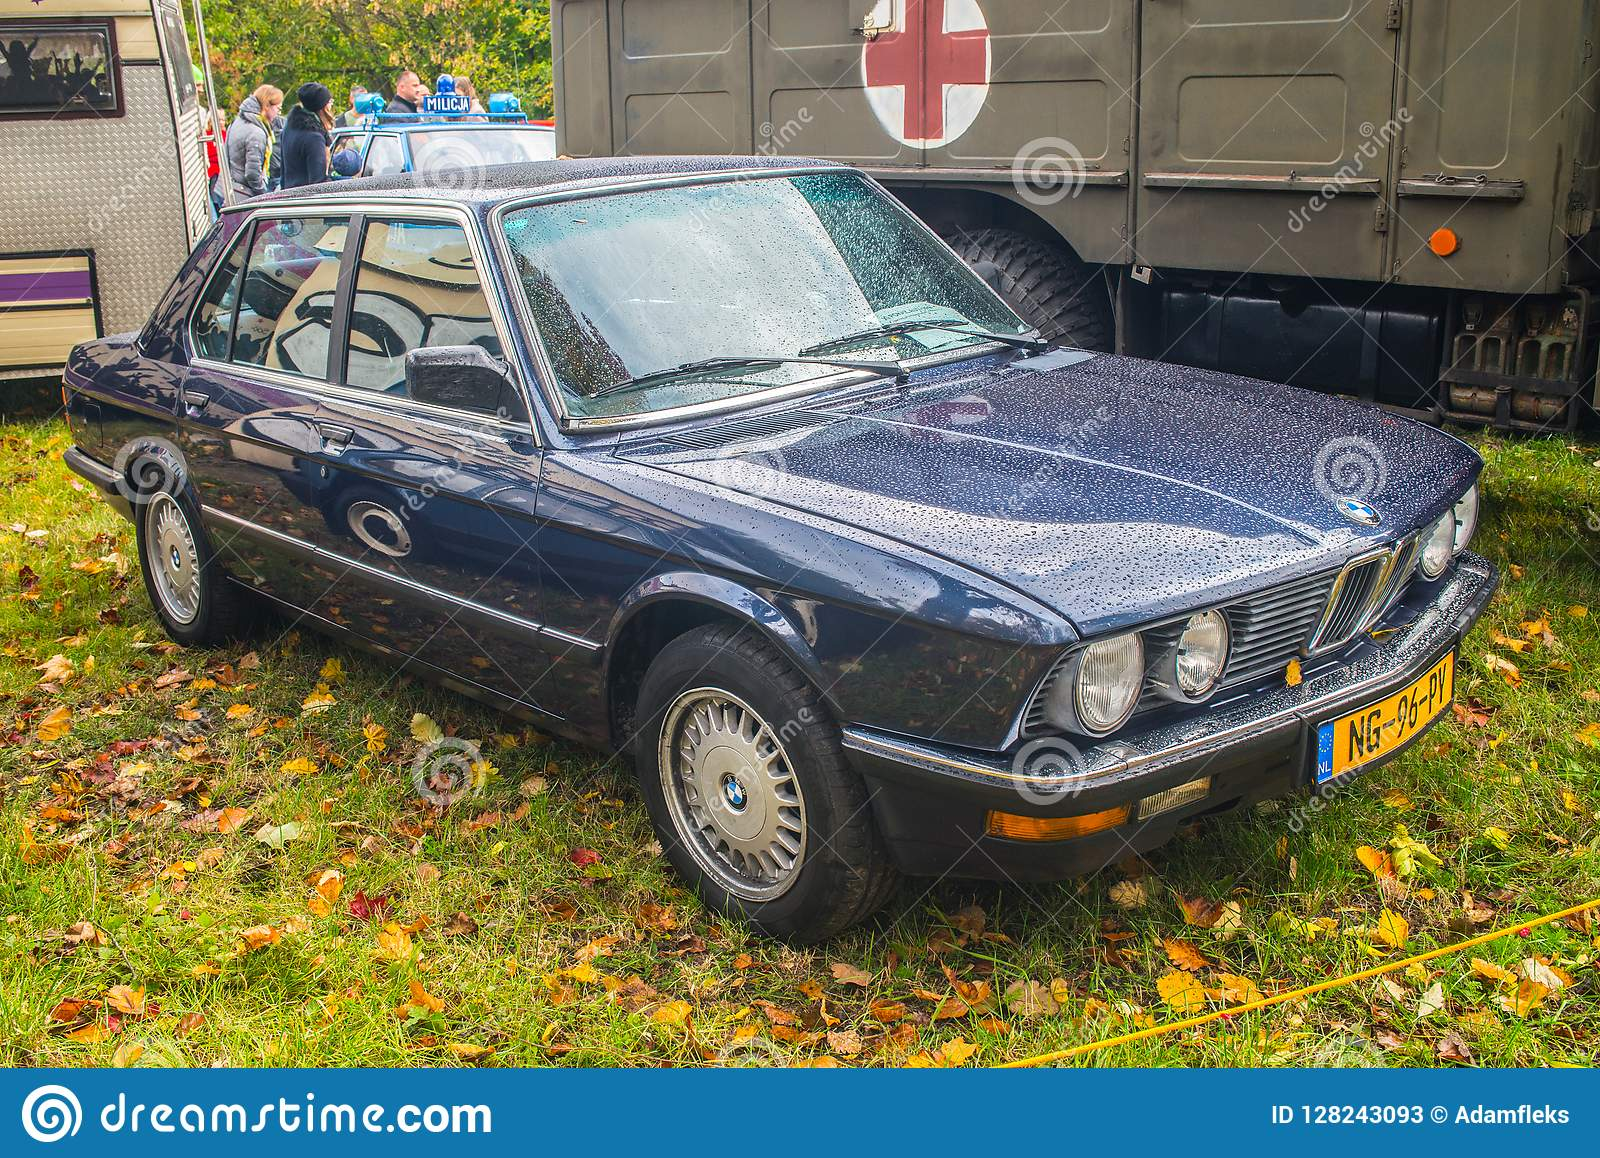 Classic German Car Bmw Limousine Editorial Stock Photo Image Of Cooled Cars 128243093